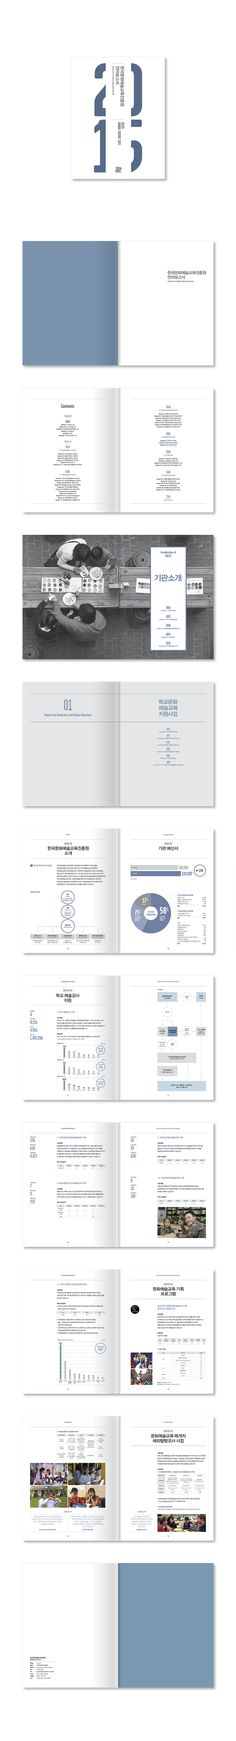 [한국문화예술교육진흥원] 연차보고서 2015 Leaflet Layout, Leaflet Design, Booklet Design, Brochure Layout, Book Design Layout, Print Layout, Brochure Design, Editorial Layout, Editorial Design